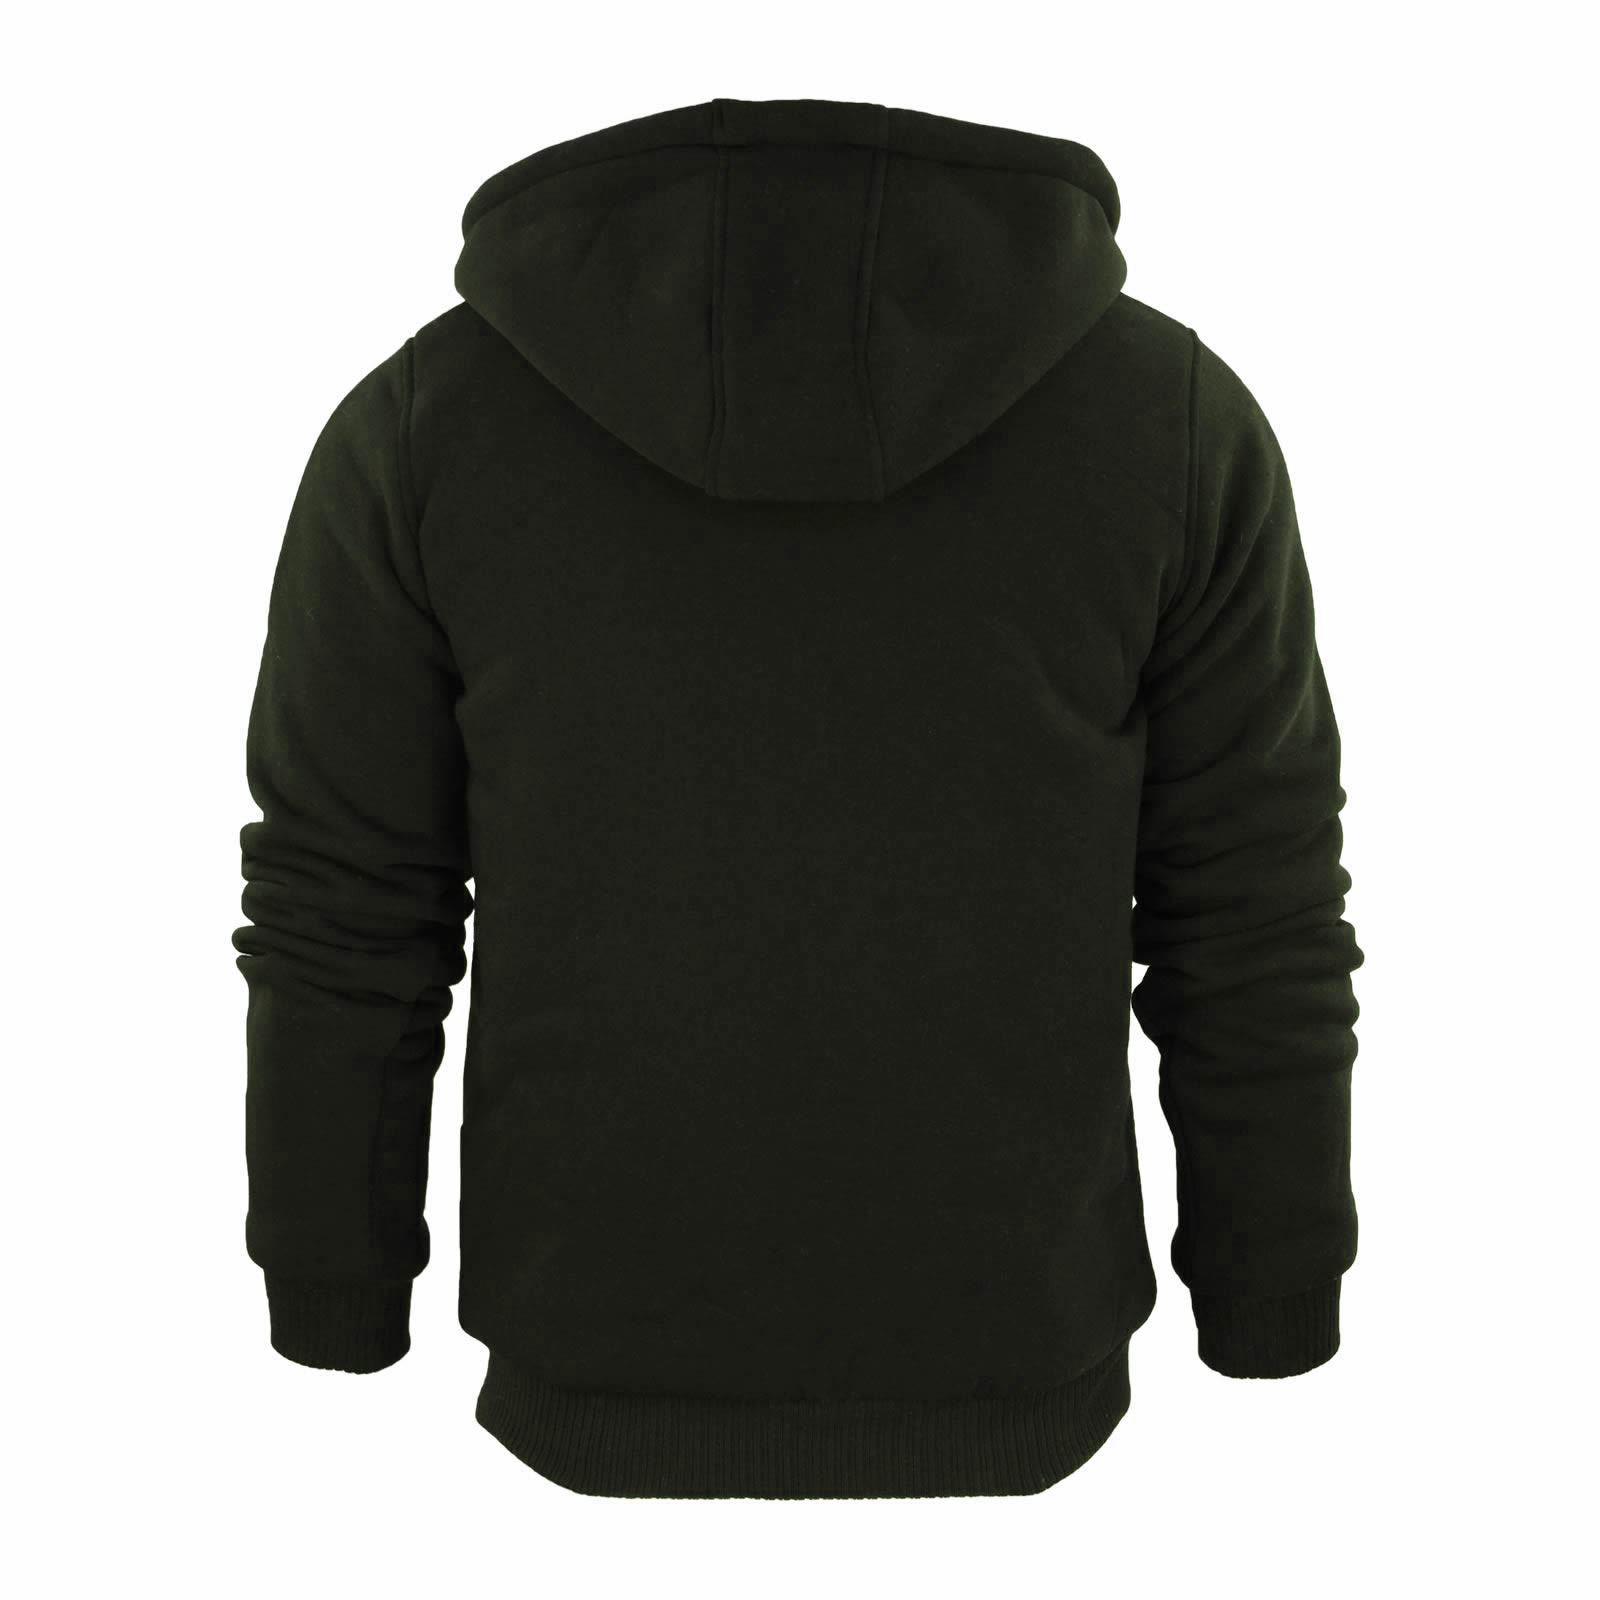 Mens-Hoodie-Brave-Soul-Zone-Sherpa-Fleece-Lined-Zip-Up-Hooded-Sweater thumbnail 12